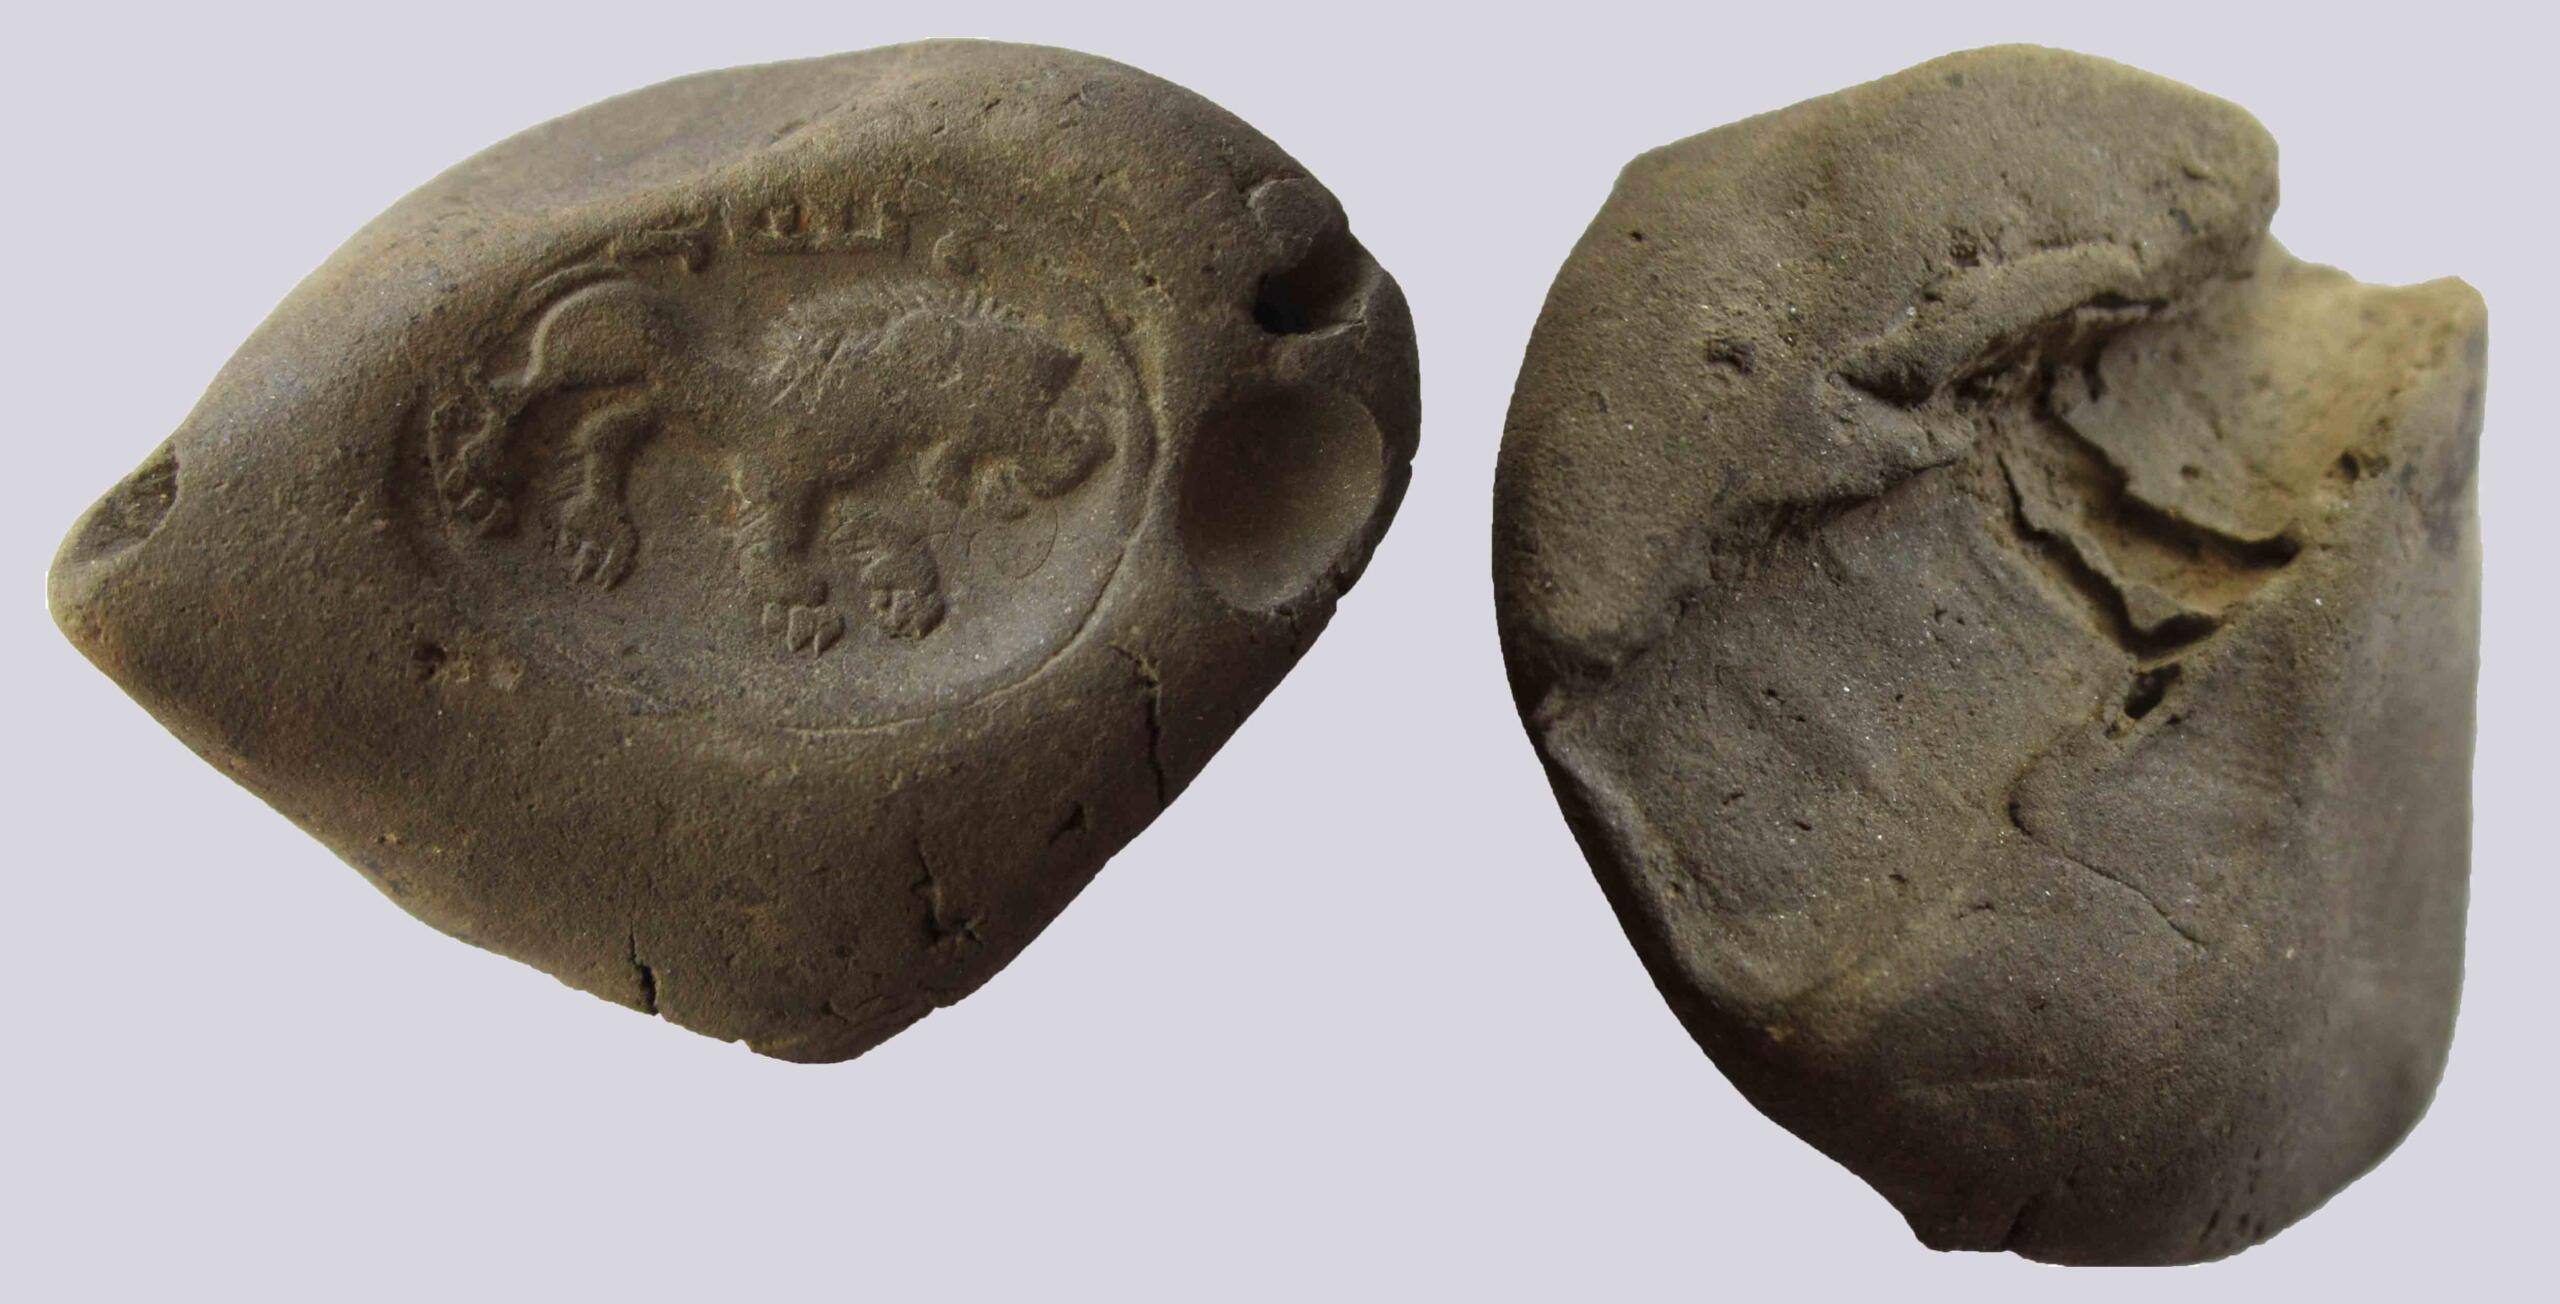 Hunnic Clay Sealing with Brahmi Inscription